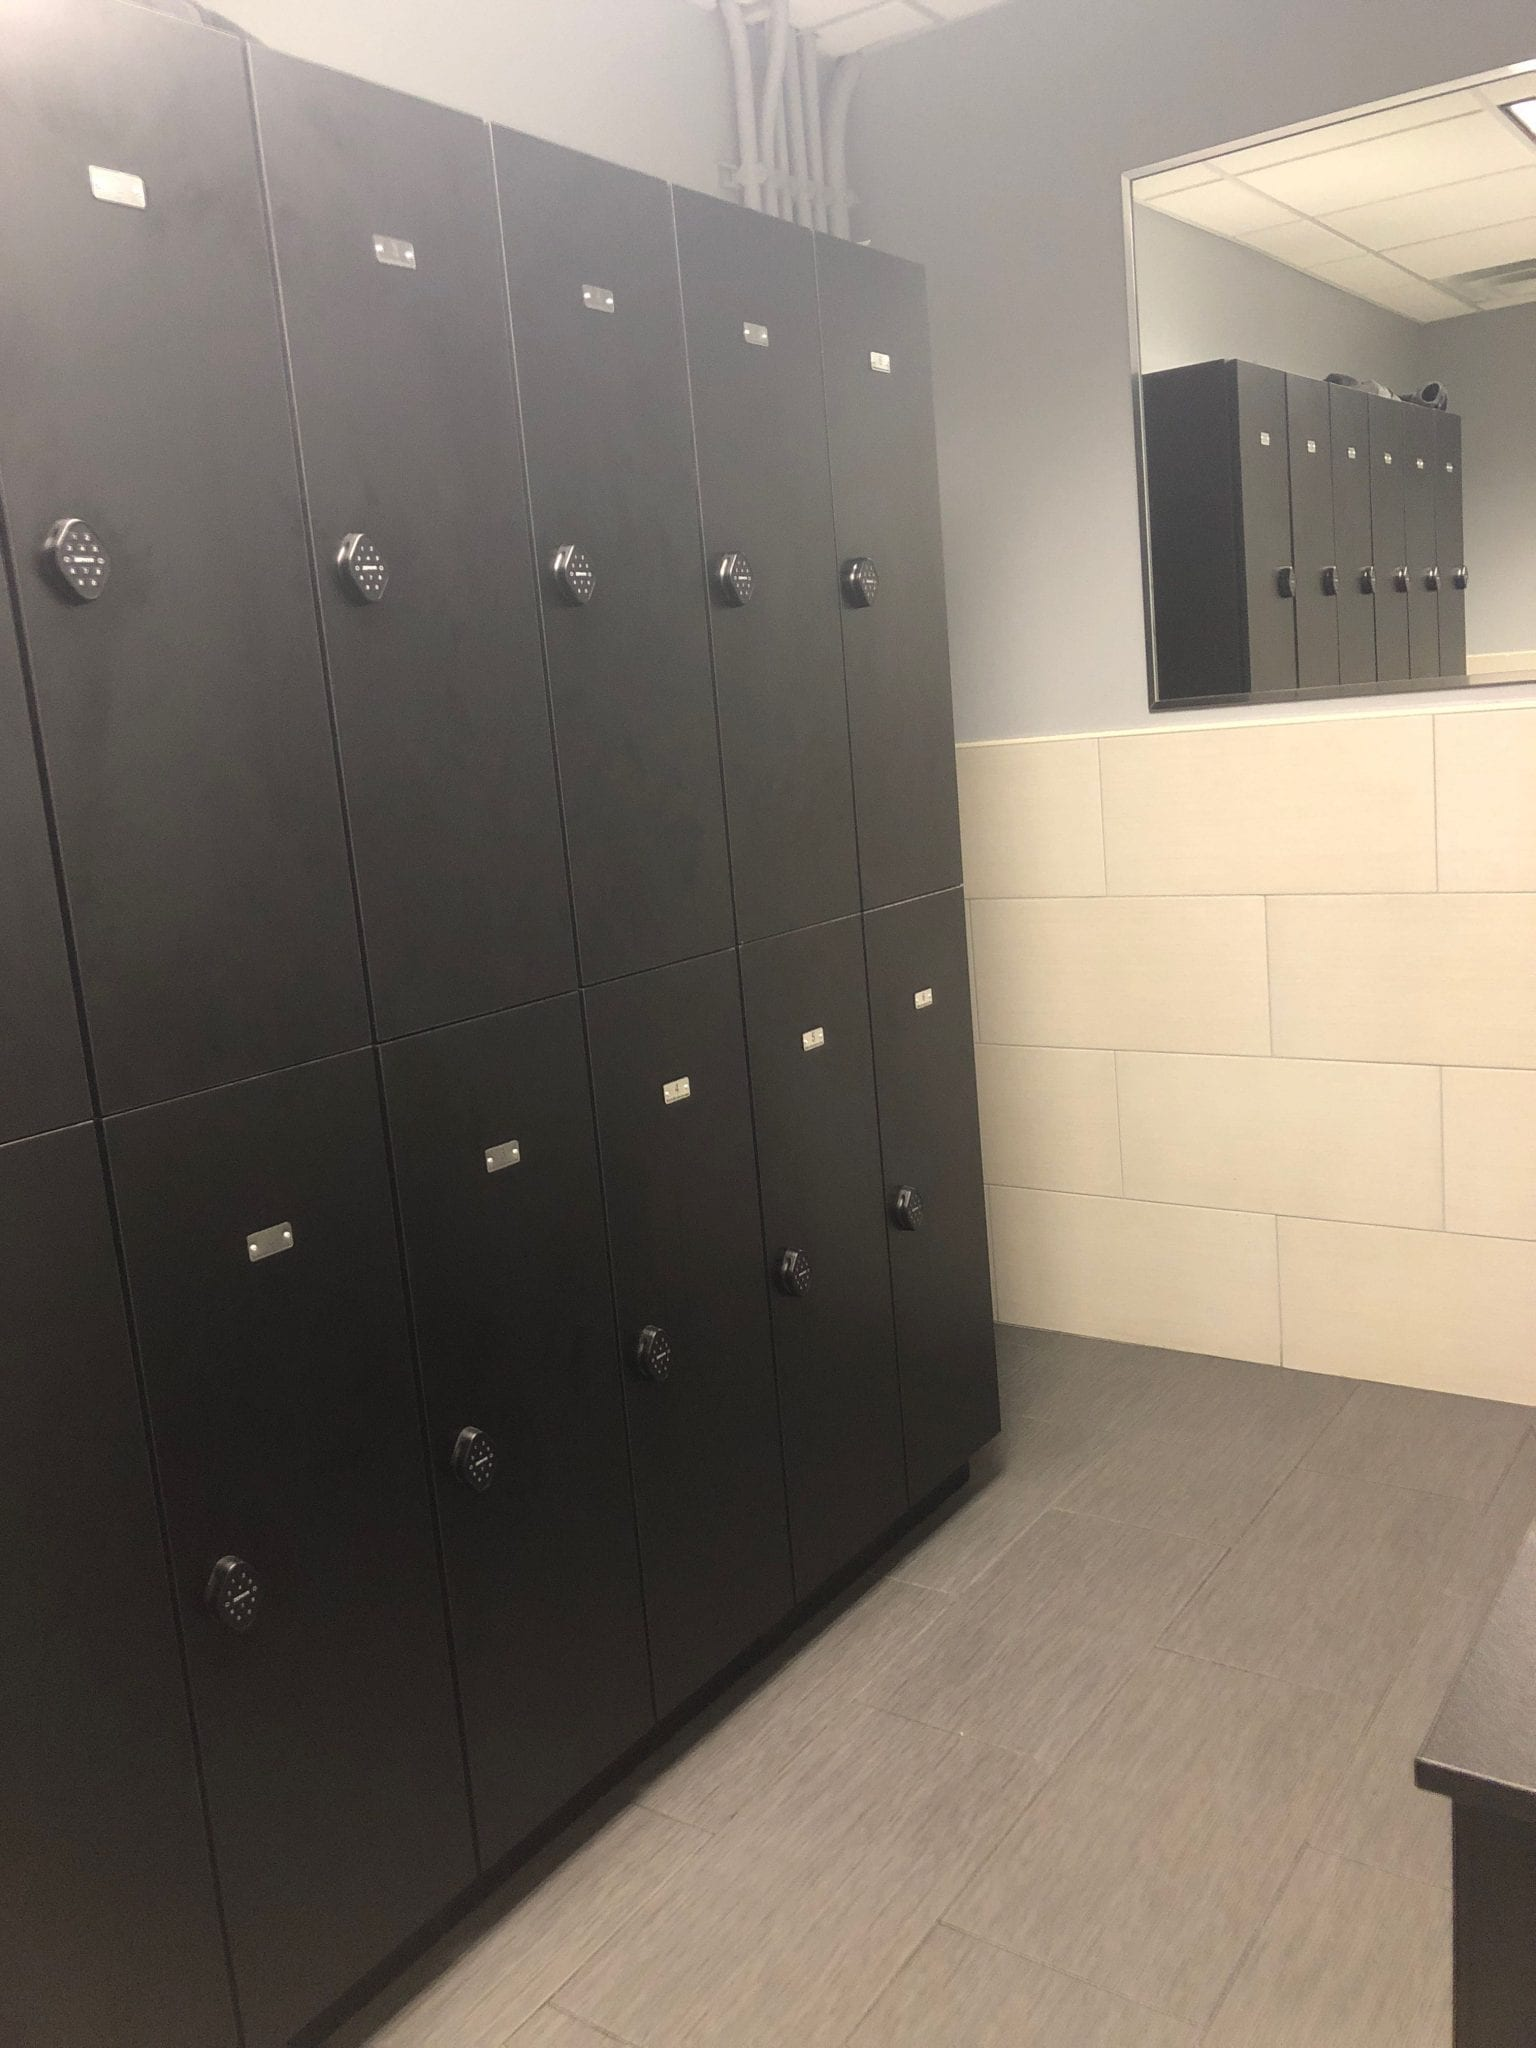 Here is an image of our locker room at our physical therapy clinic in lower Manhattan, New York City at Union Square.